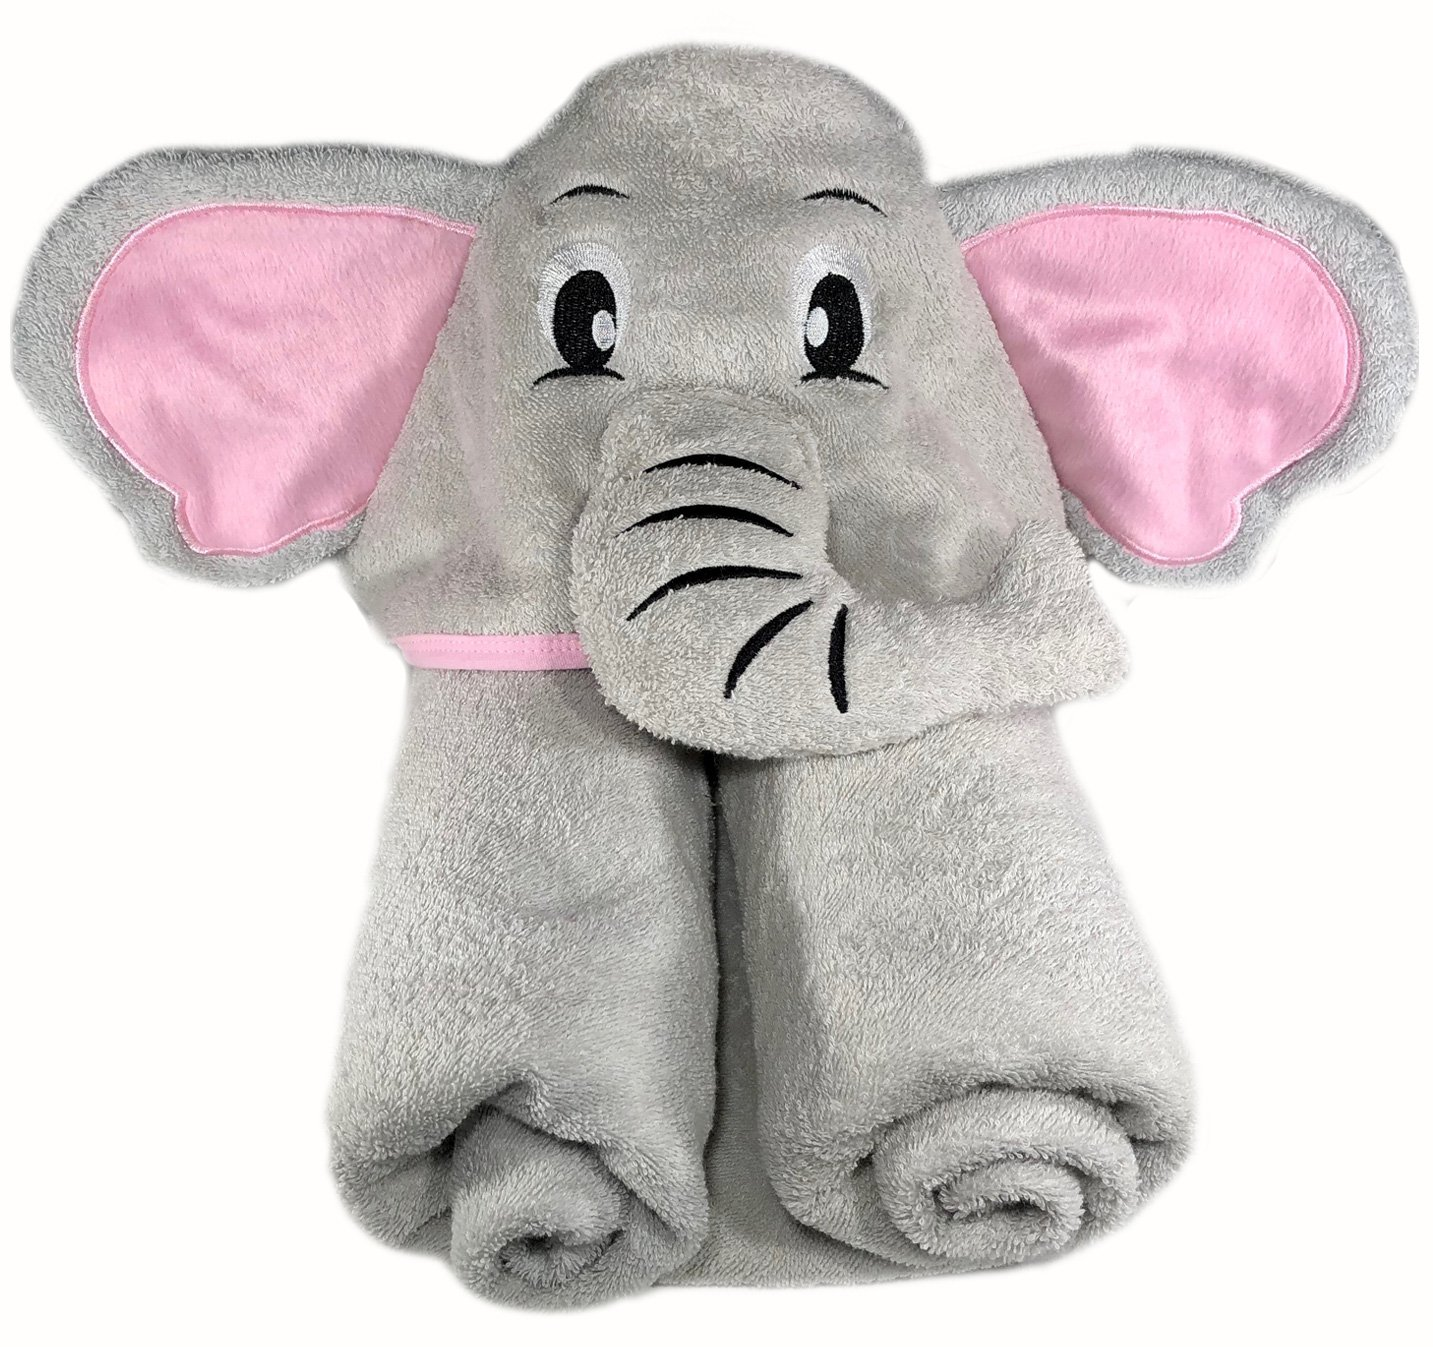 Elephant Hooded Bath Towel   Premium Cotton   For Baby, Infant, Toddler, Kids, Boy, or Girl   Extra Large Pink and Grey   Baby Shower